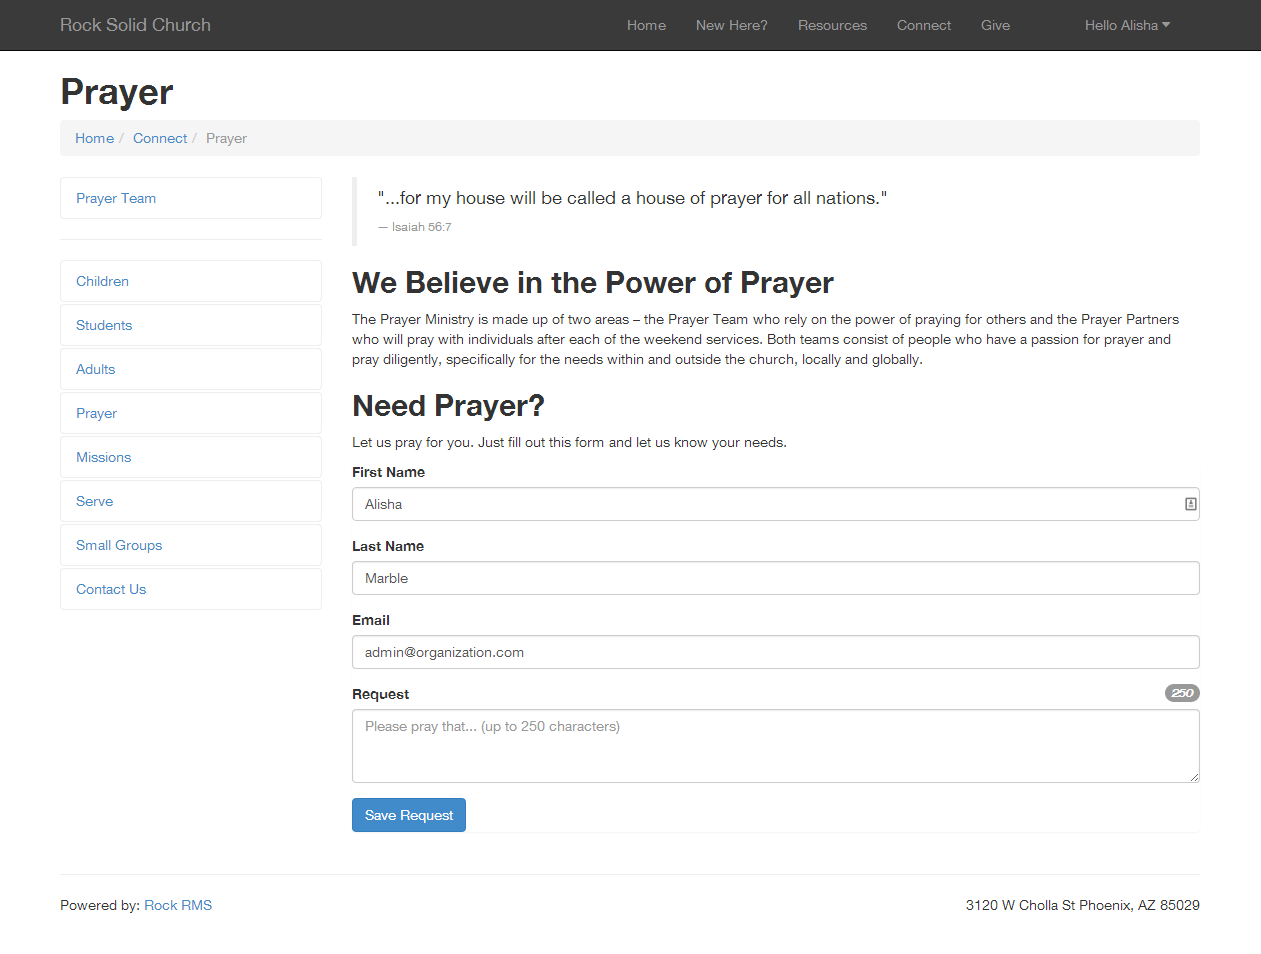 Adding a Prayer Request